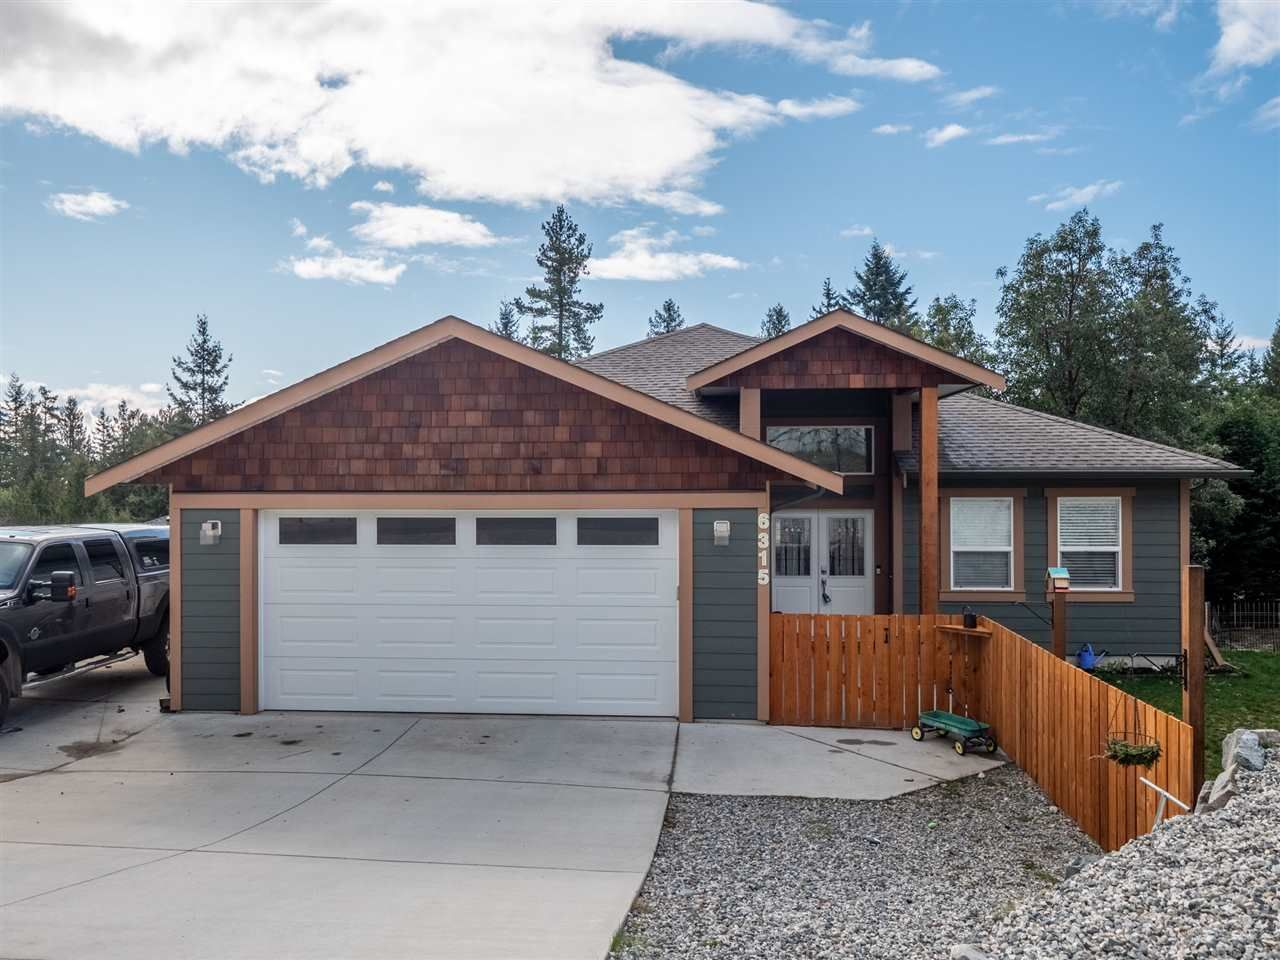 Main Photo: 6315 ORACLE Road in Sechelt: Sechelt District House for sale (Sunshine Coast)  : MLS®# R2536883